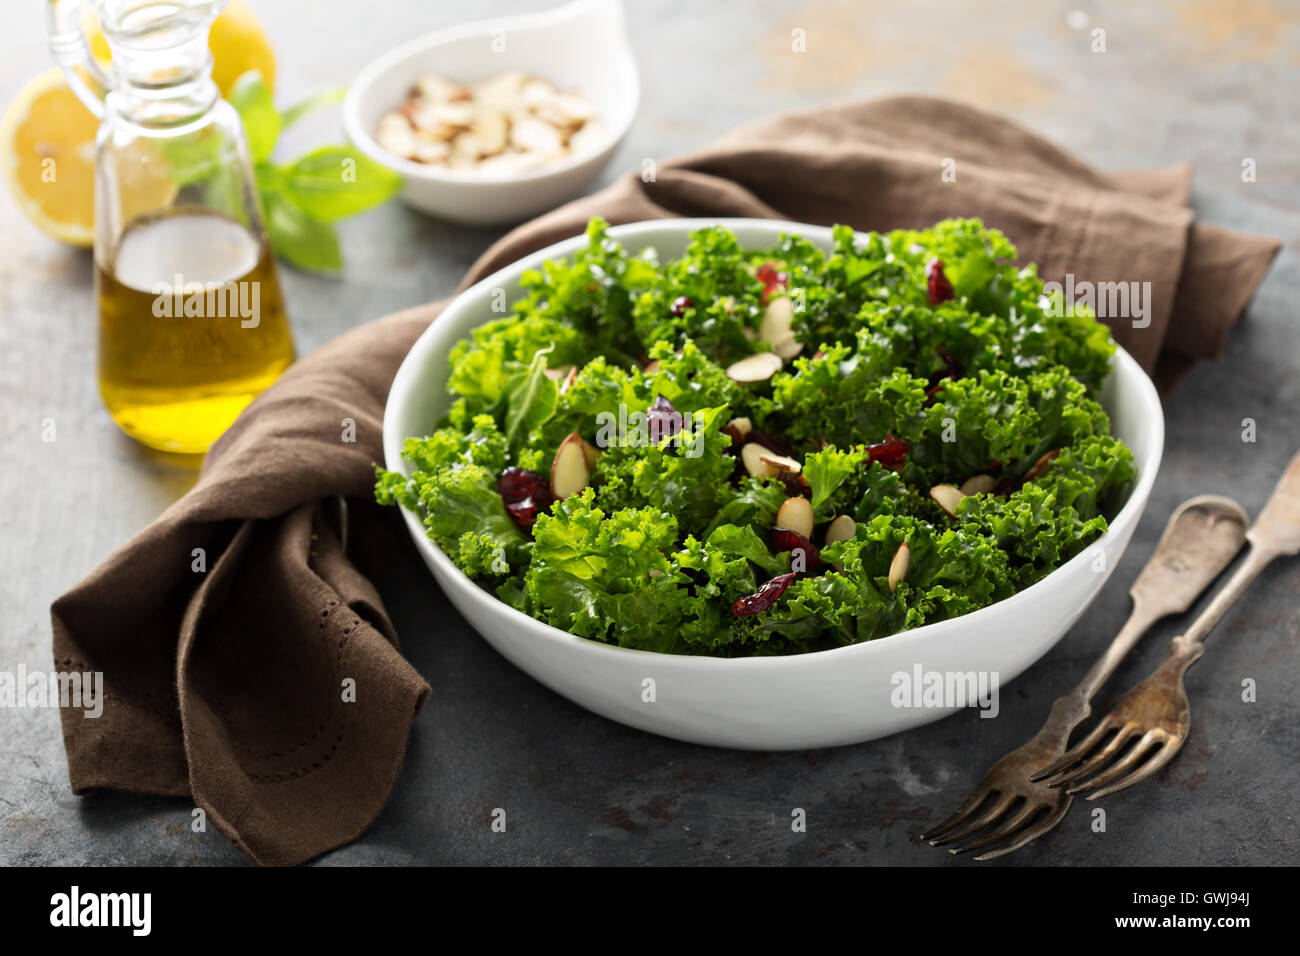 Fresh healthy salad with kale and cranberry - Stock Image